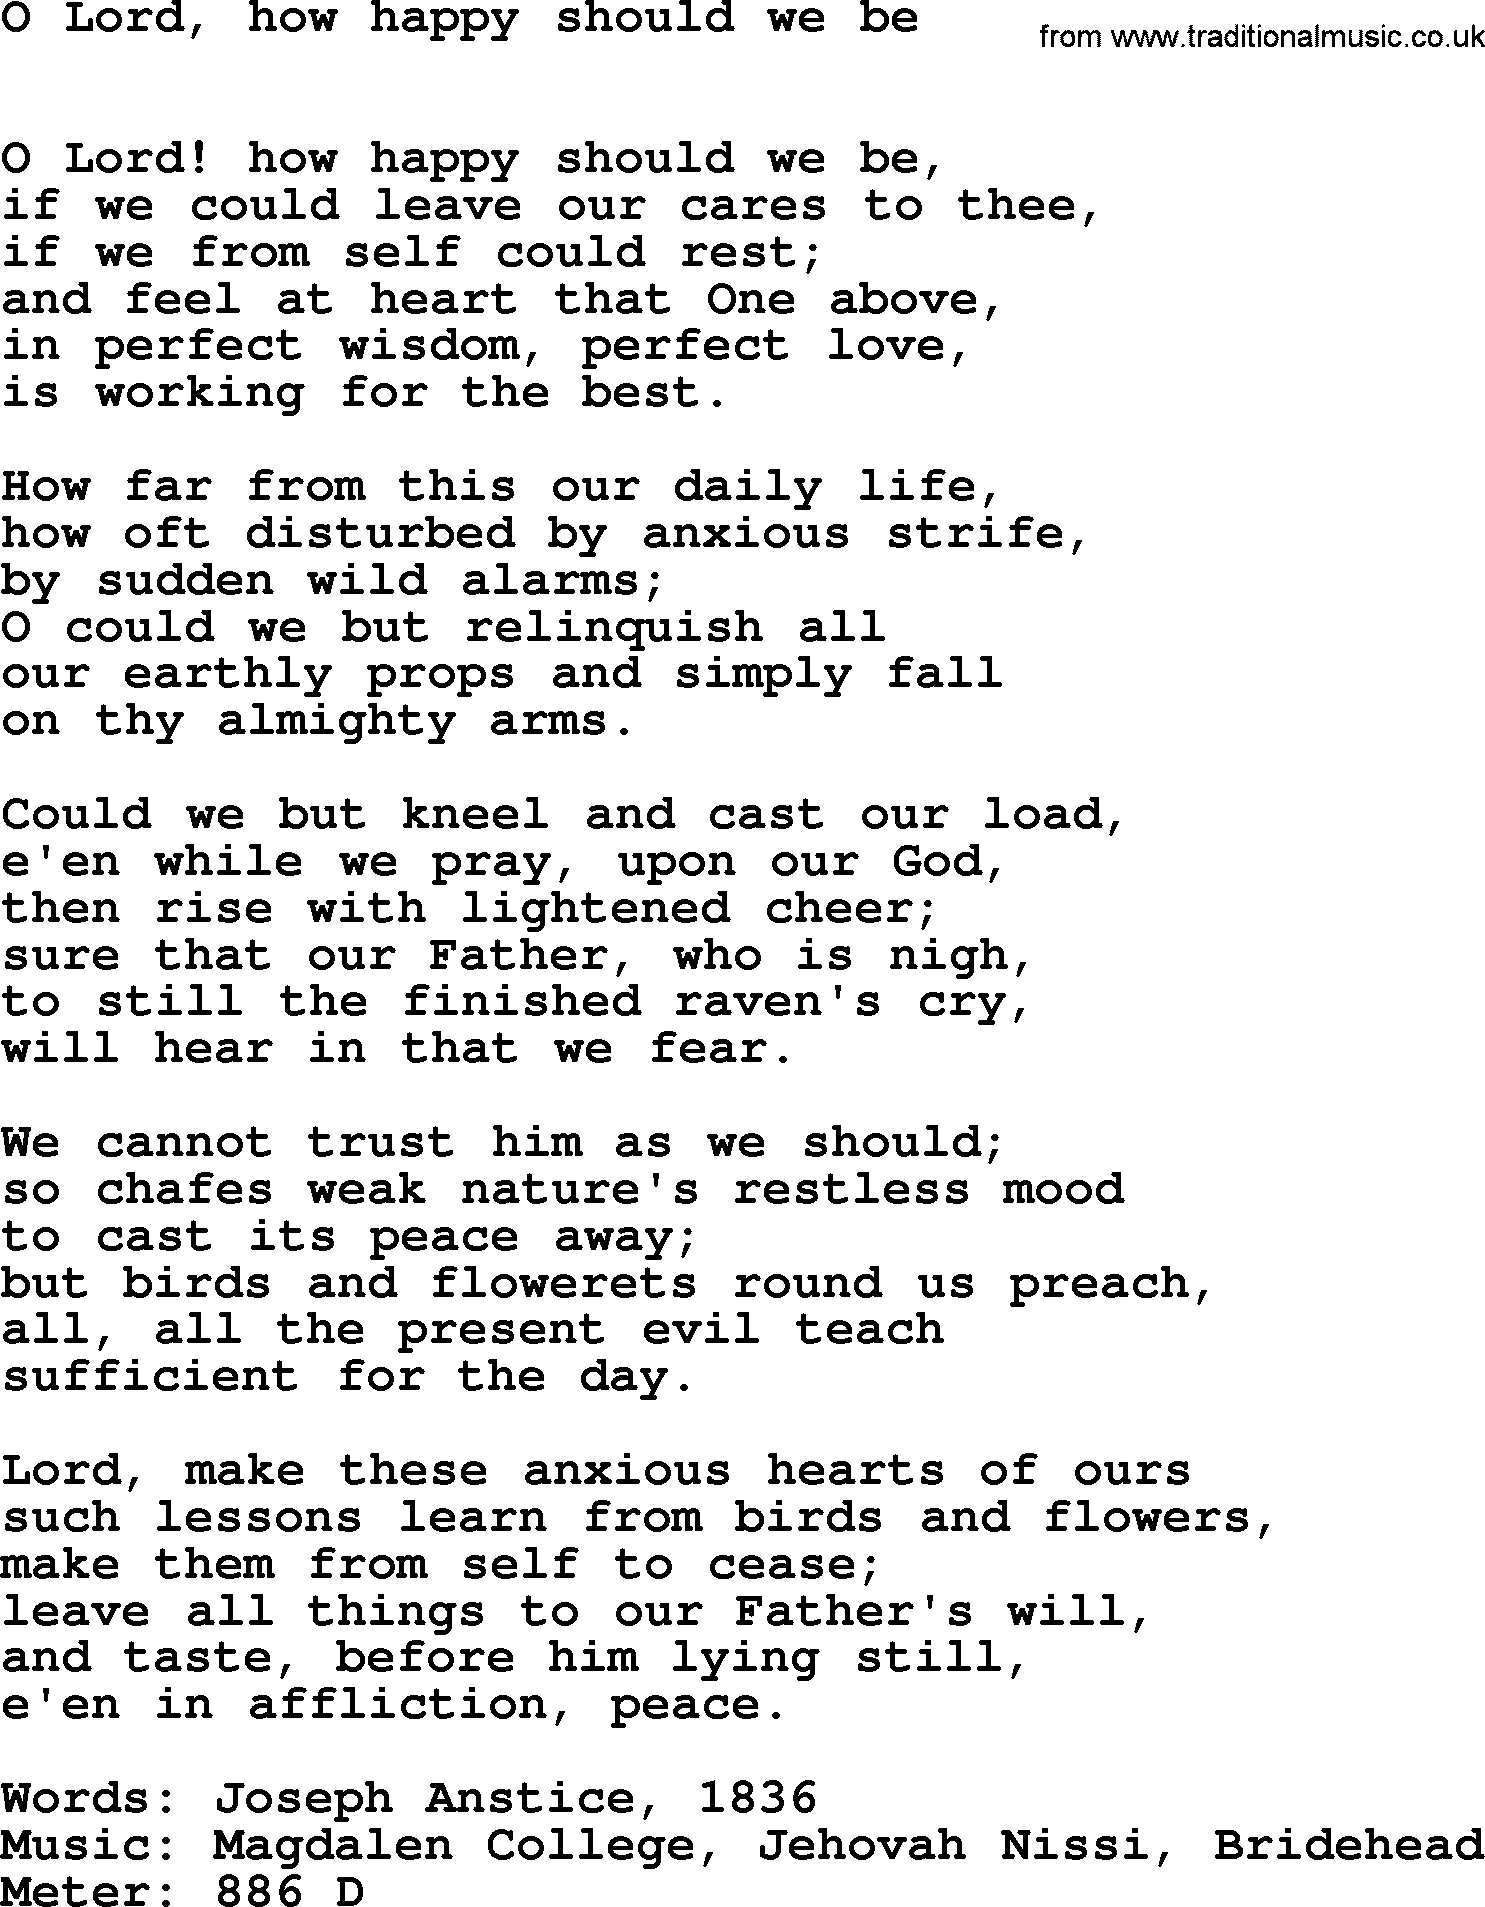 Book of Common Praise Song: O Lord, How Happy Should We Be, lyrics